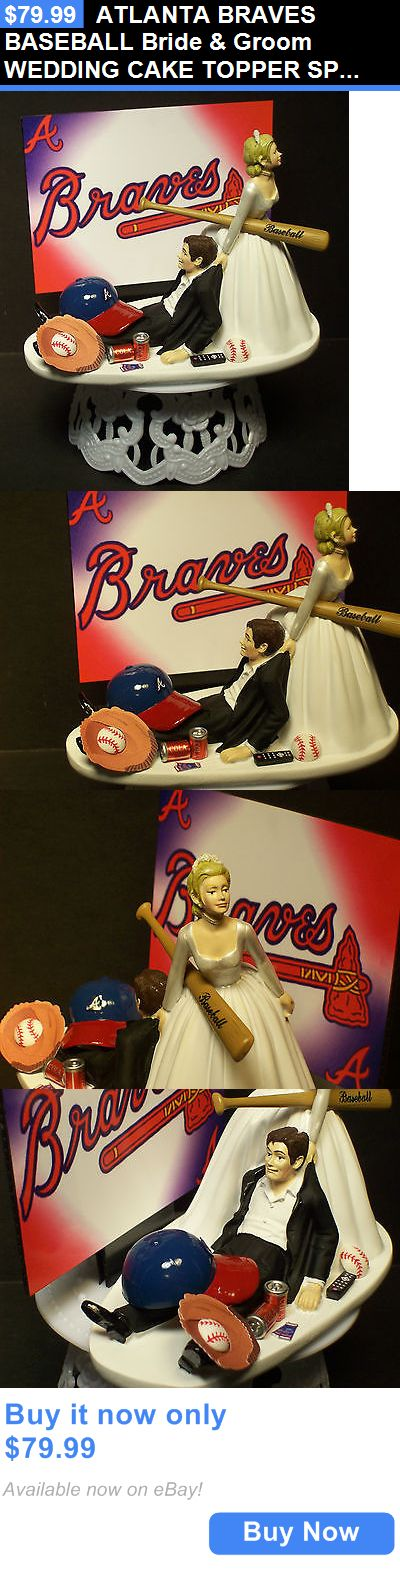 Wedding Cakes Toppers: Atlanta Braves Baseball Bride And Groom Wedding Cake Topper Sports Funny Georgia BUY IT NOW ONLY: $79.99